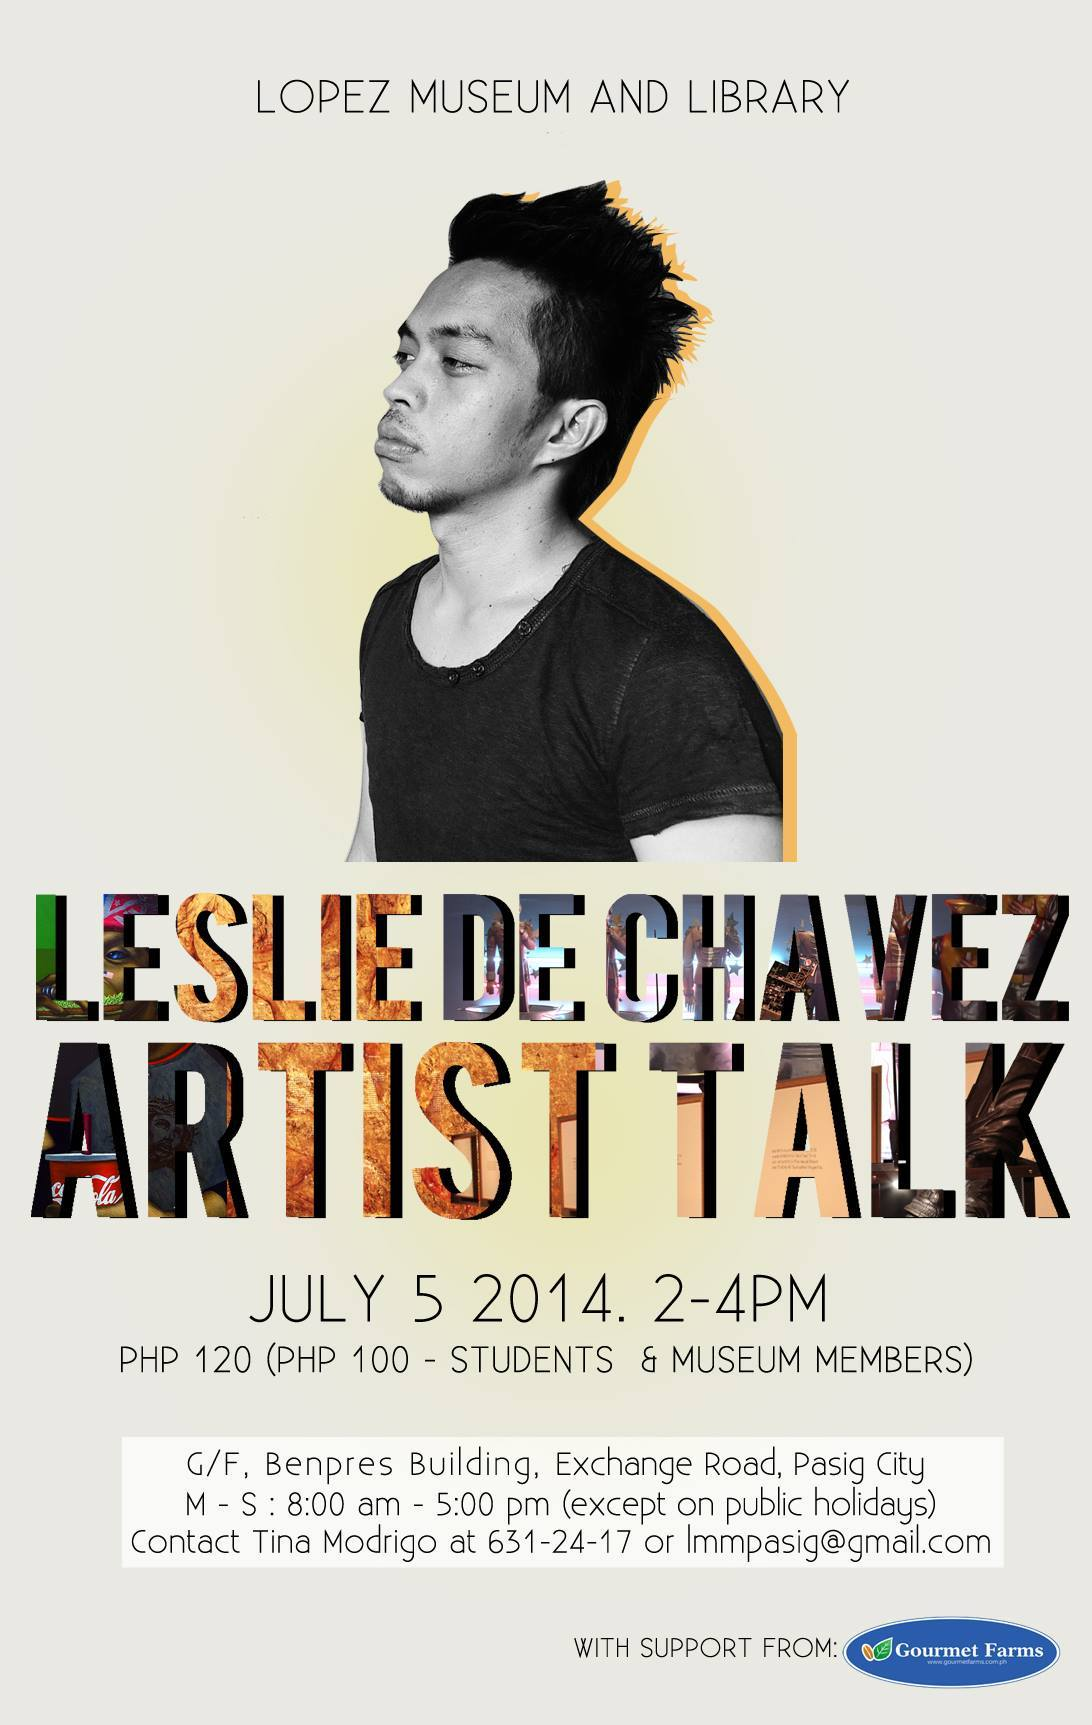 Leslie de Chavez Artist Talk at Lopez Museum and Library